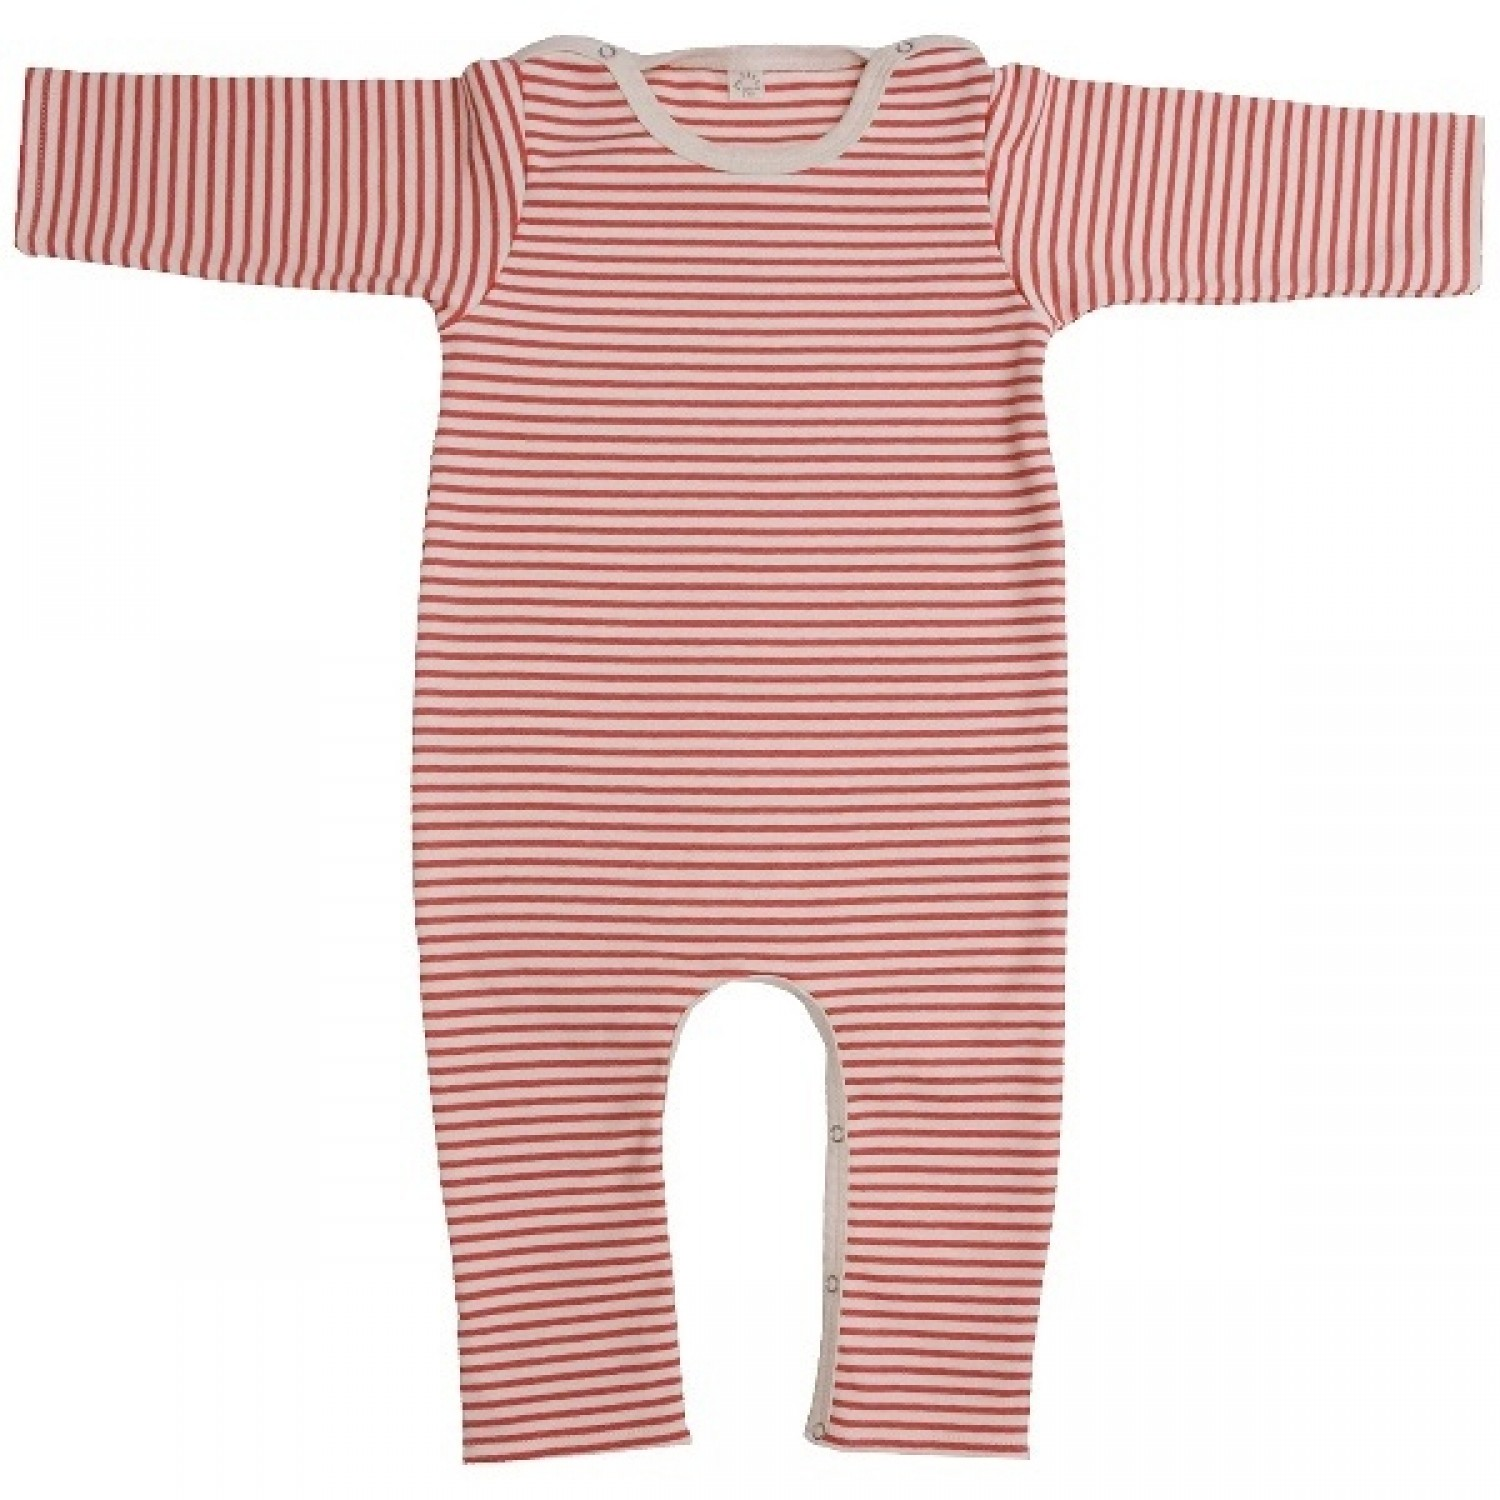 Red Baby Overall without feet of organic cotton | iobio